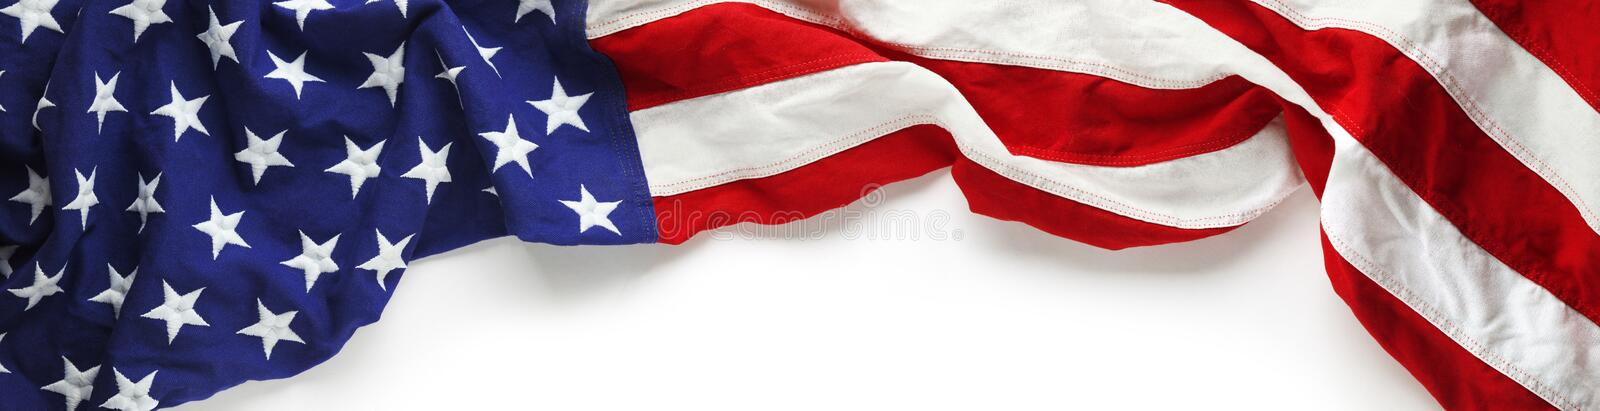 American flag for Memorial day or Veteran`s day background. Red, white, and blue American flag for Memorial day or Veteran`s day background